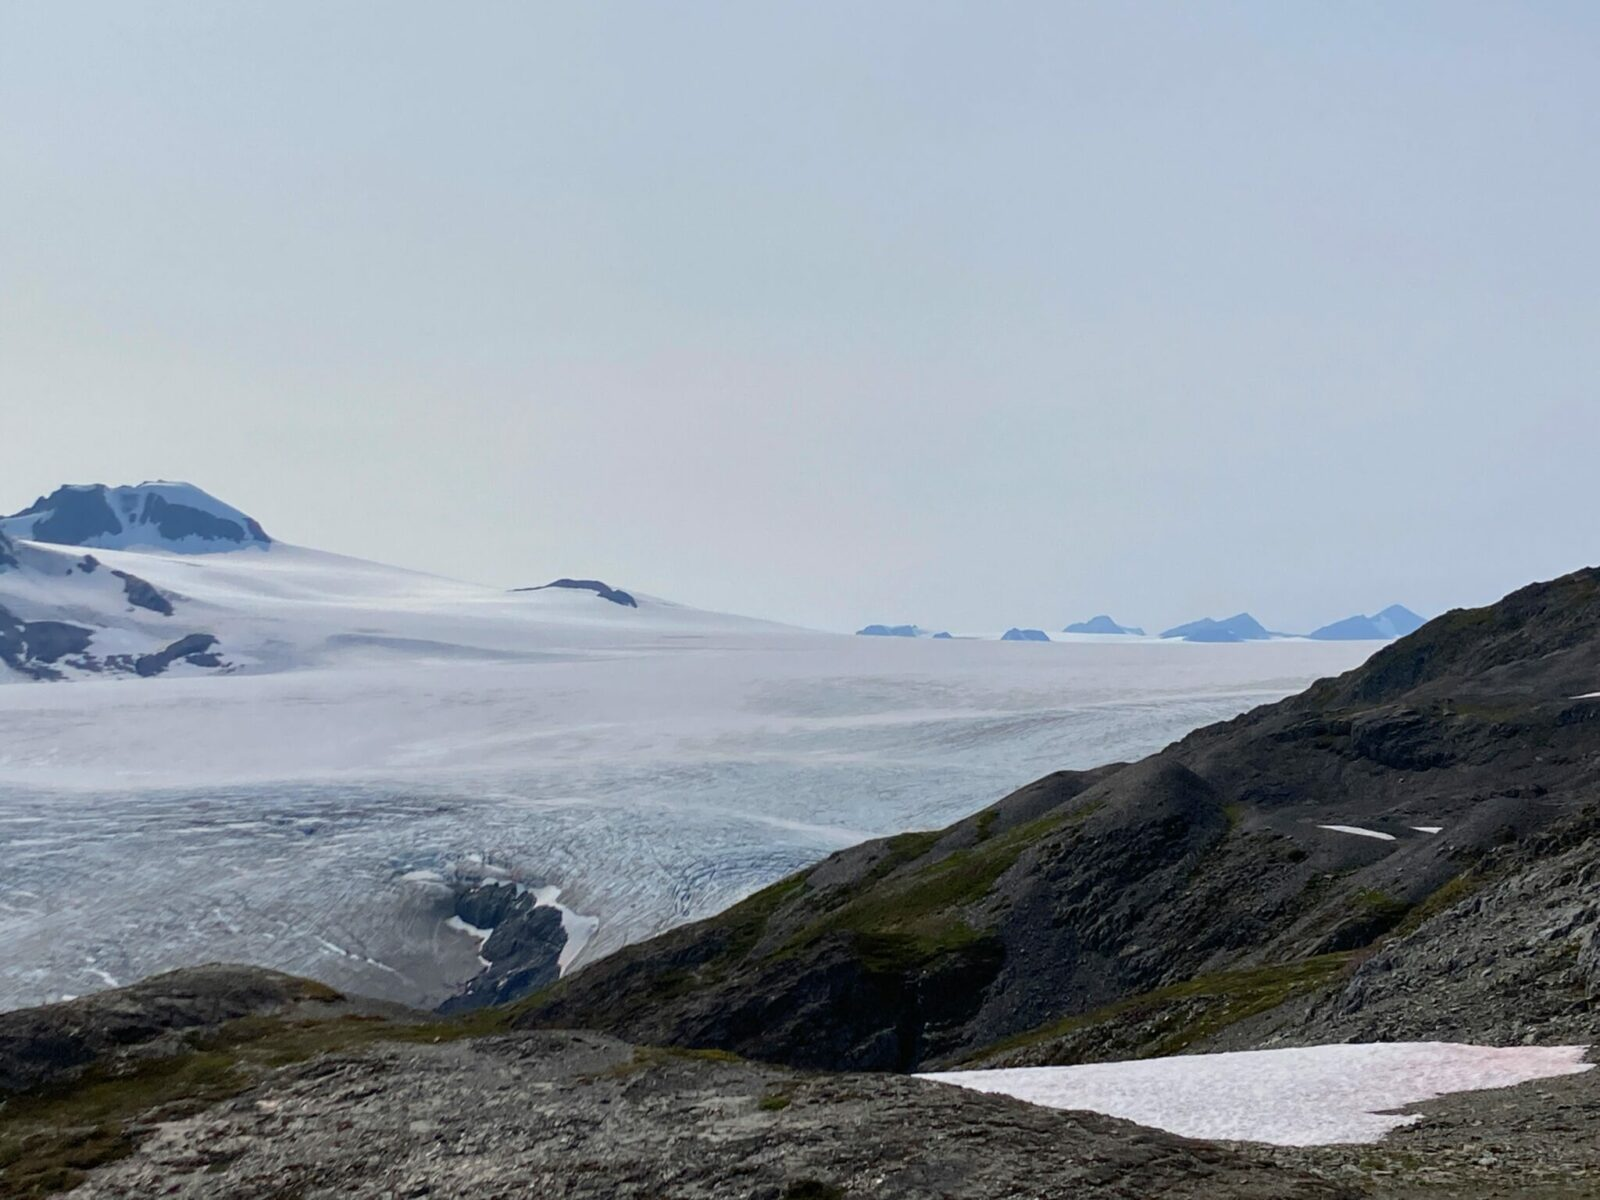 In the foreground are rocky mountains with a glacier next to them. In the distance there are more mountains sticking up from a massive icefield behind the glacier